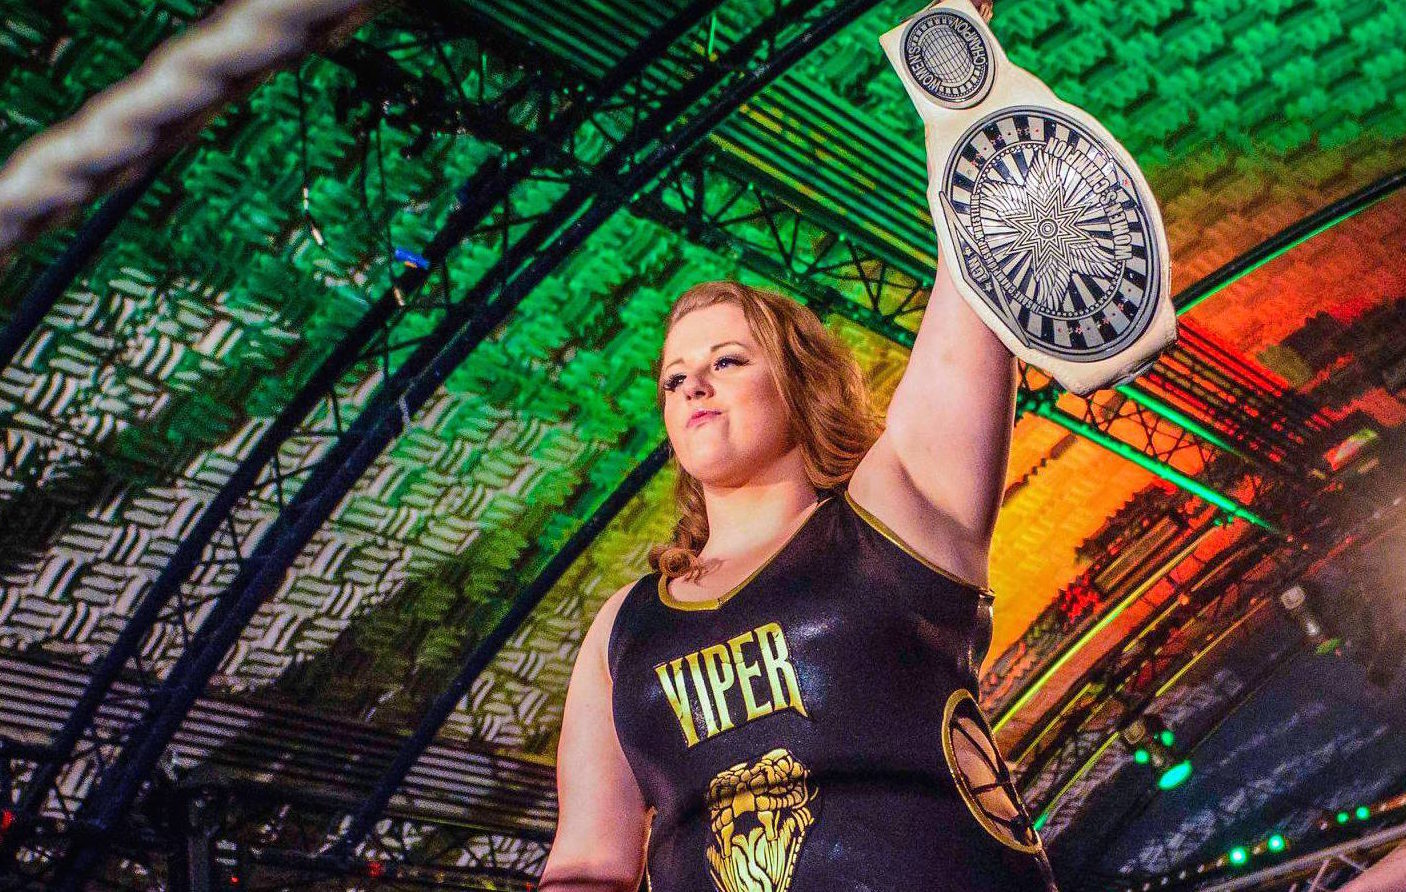 ICW Women's Champion Viper